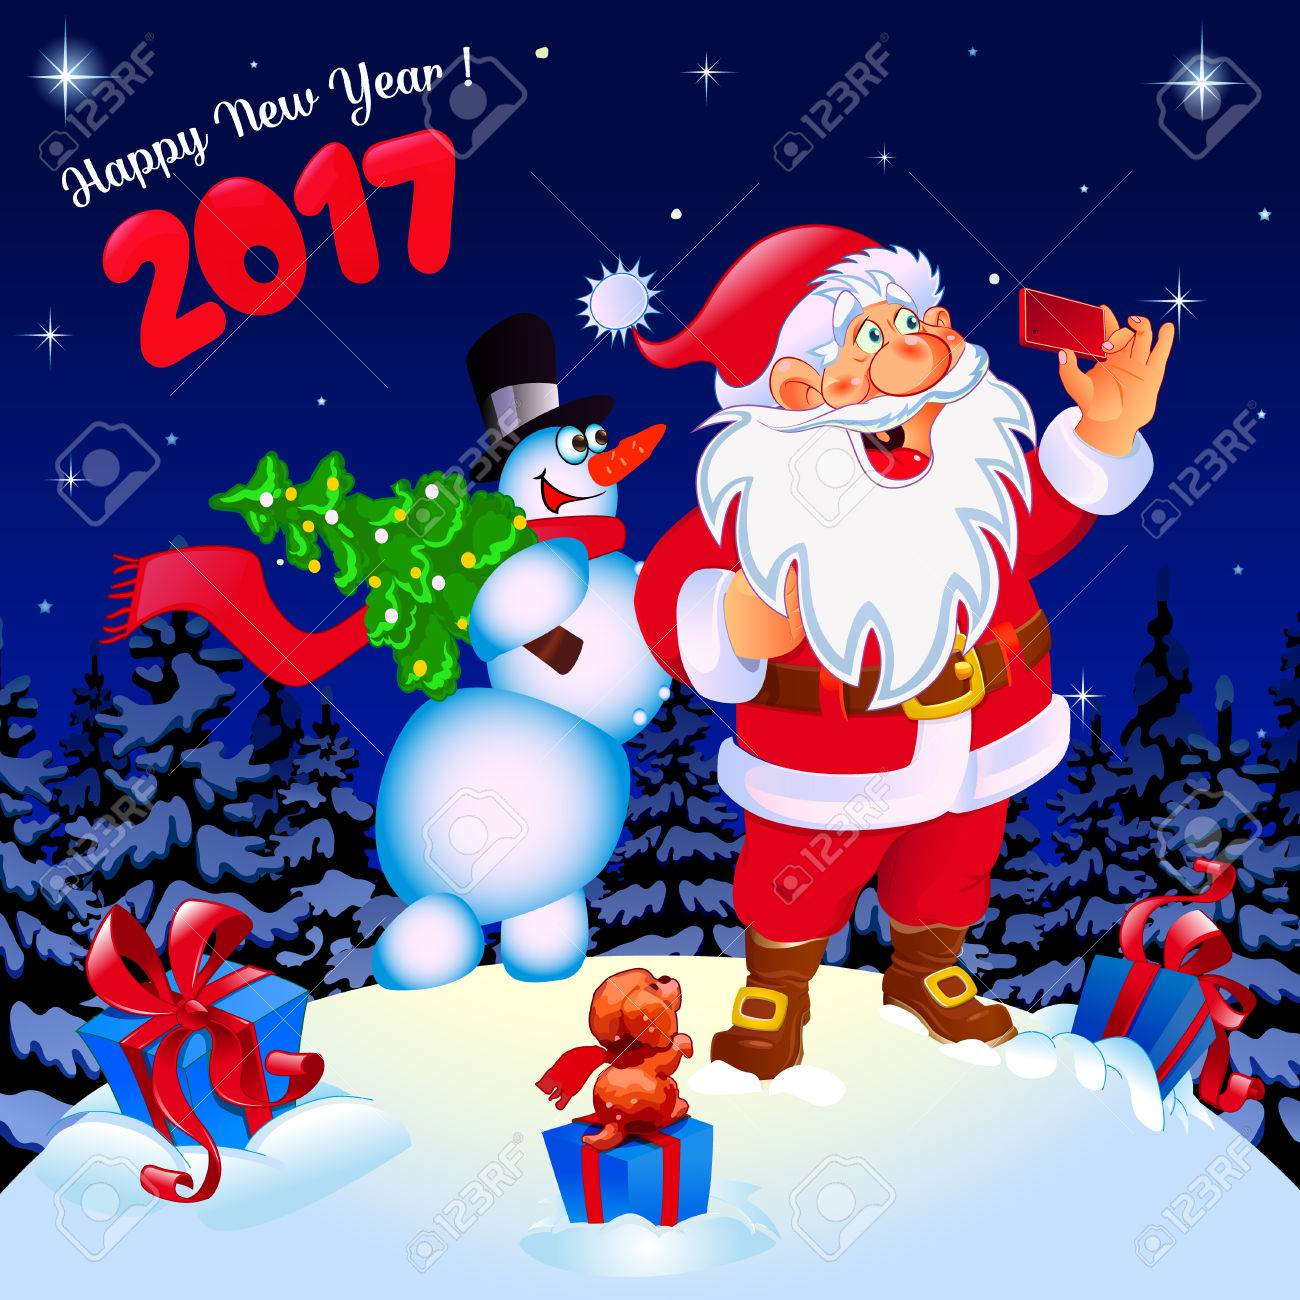 happy new year congratulation santa and snowman making selfie gifts color blue